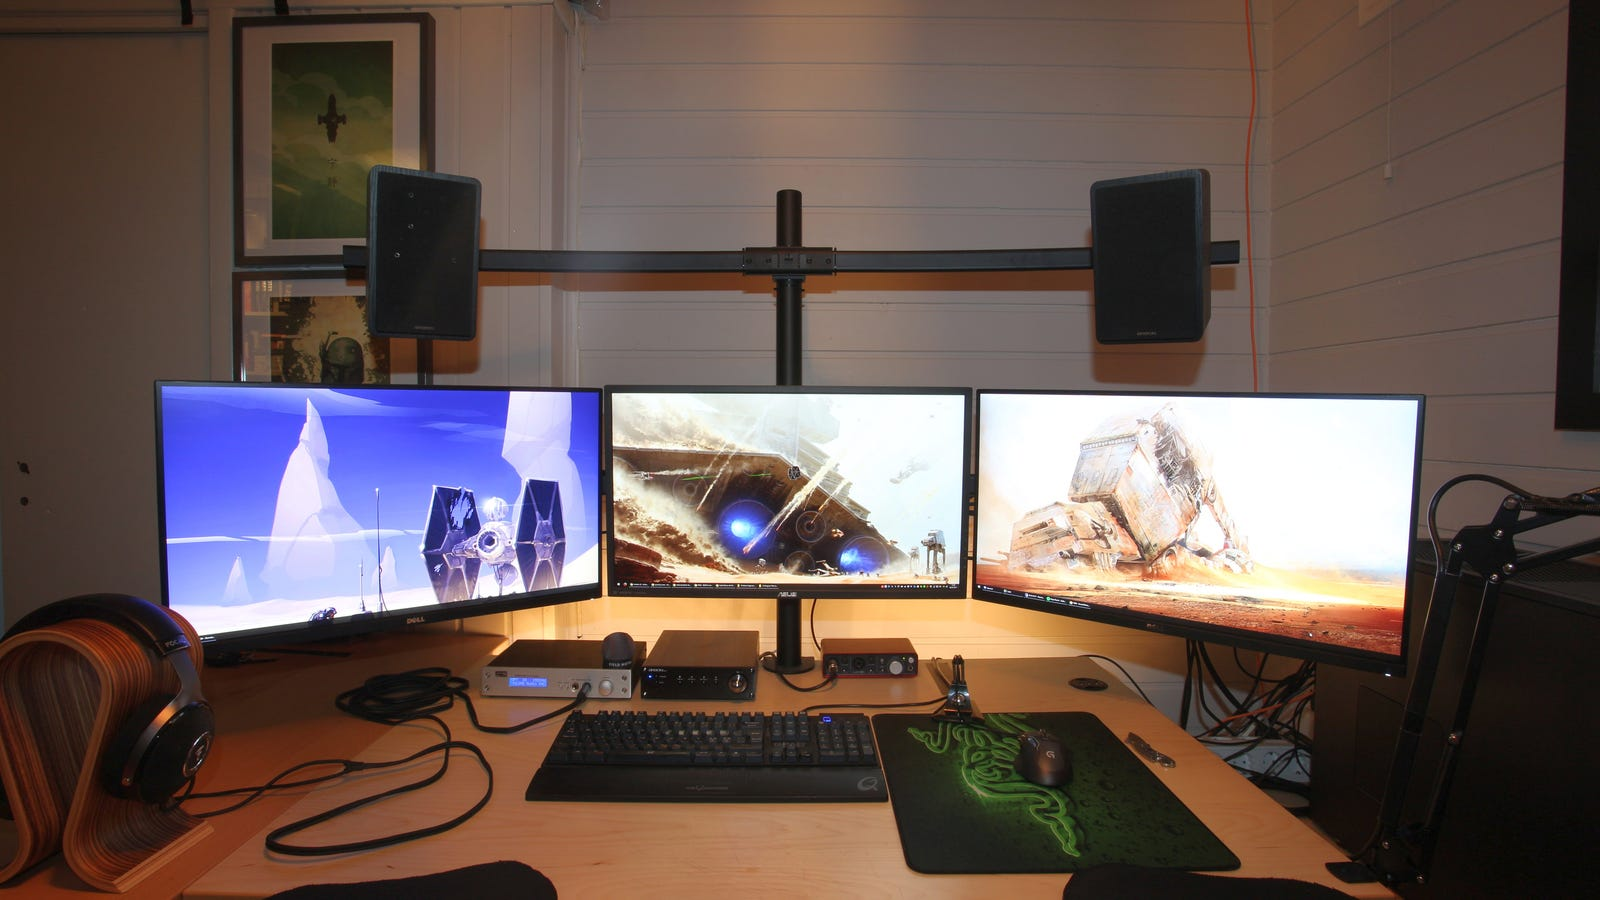 Home Office Dual Desk Setup: The Mounted Everything Workspace